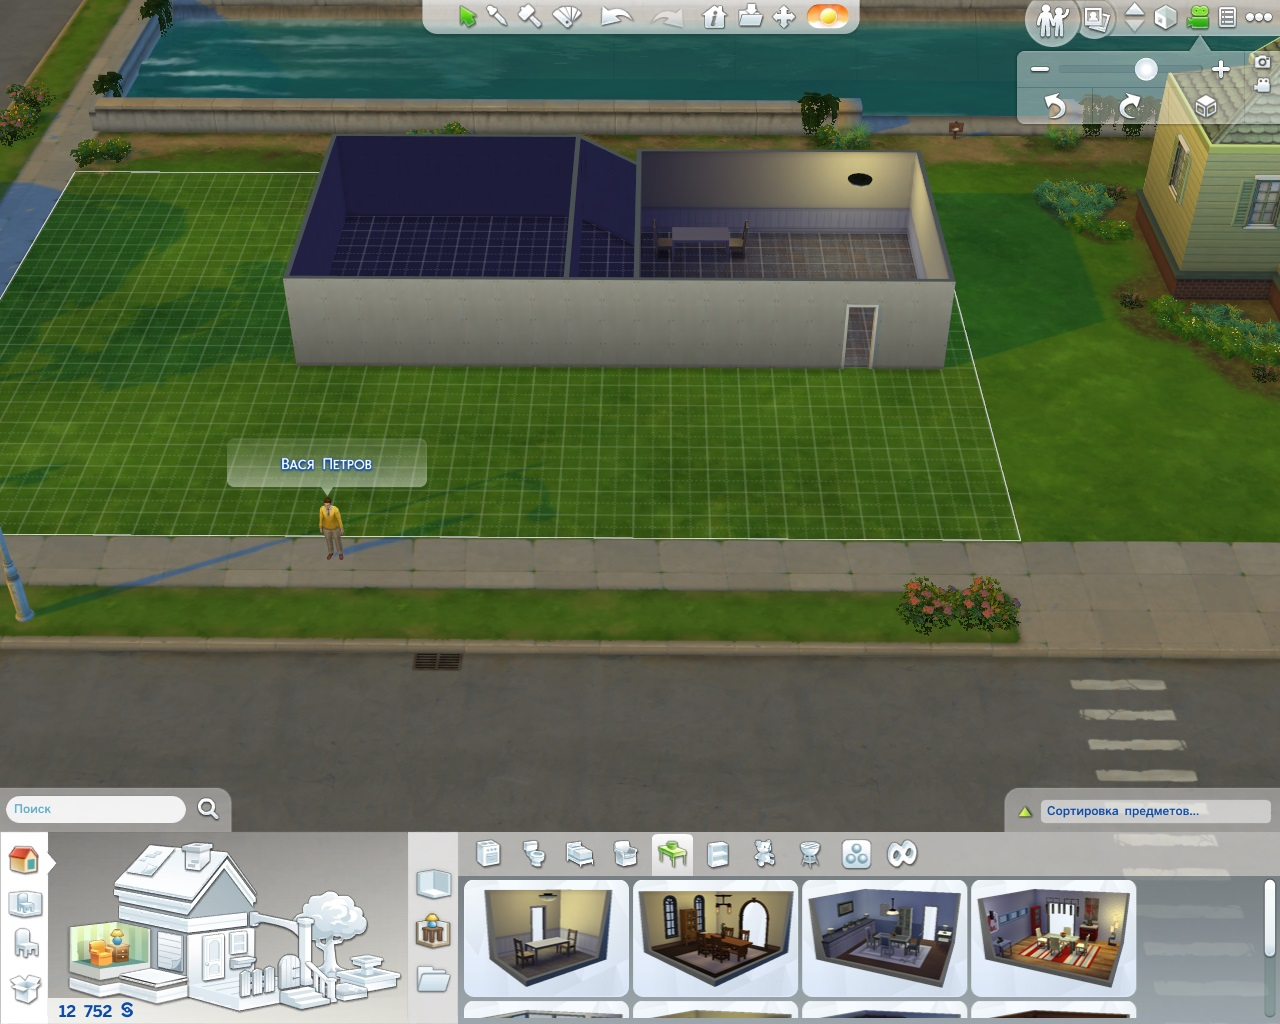 The sims 4: deluxe edition v 1. 42. 30. 1020 (2014) pc | repack от.